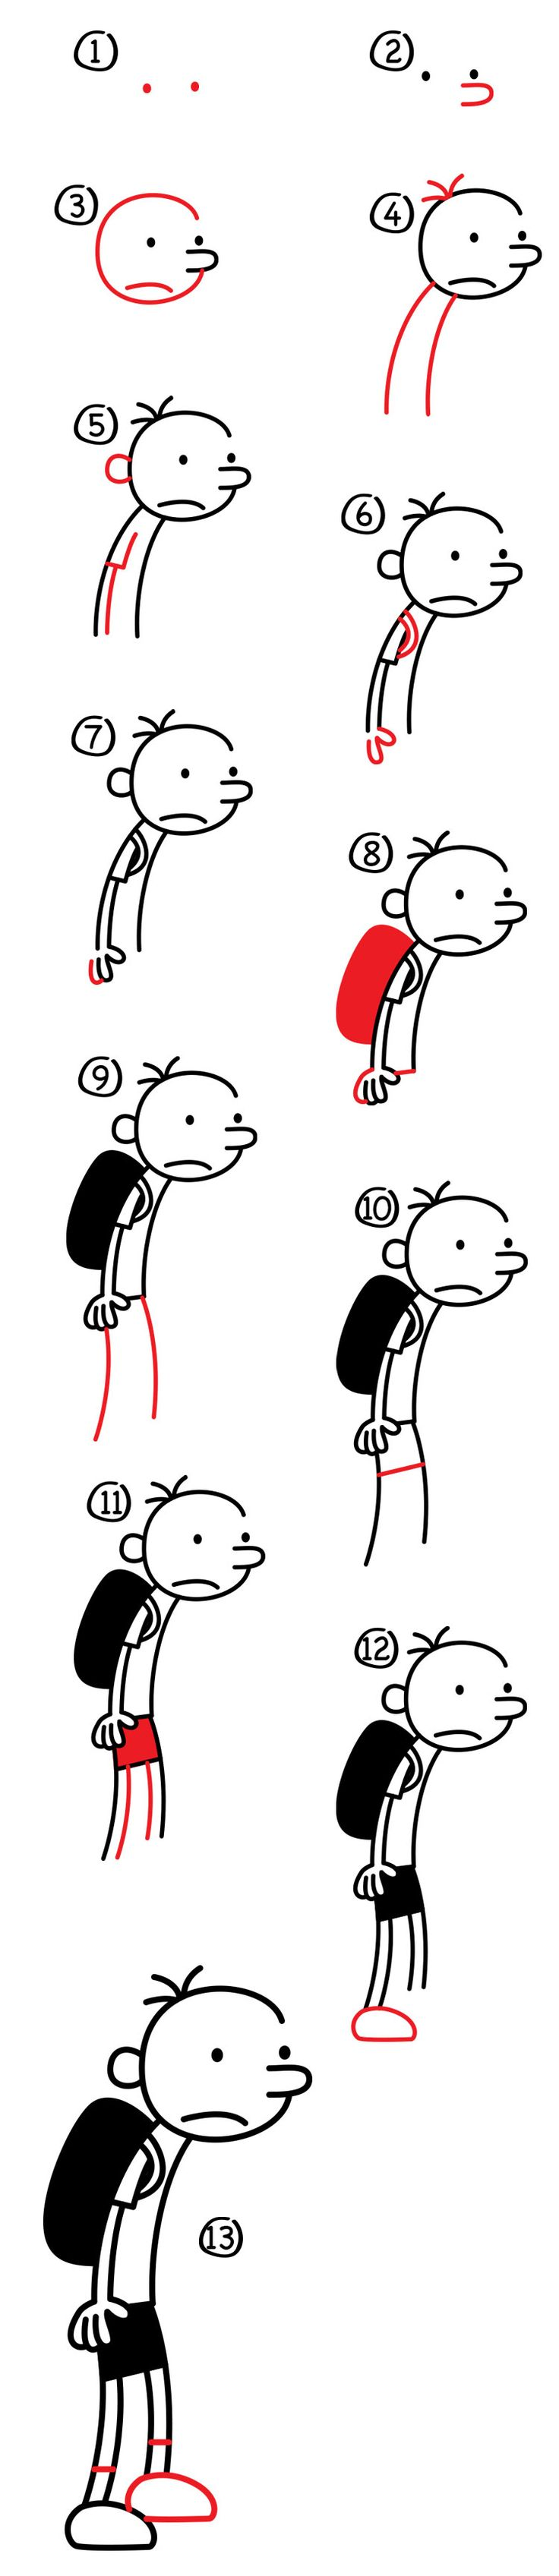 Learn how to draw Greg from Diary Of A Wimpy Kid! He's super easy and fun to draw, all you need is a marker and paper. Then follow along...